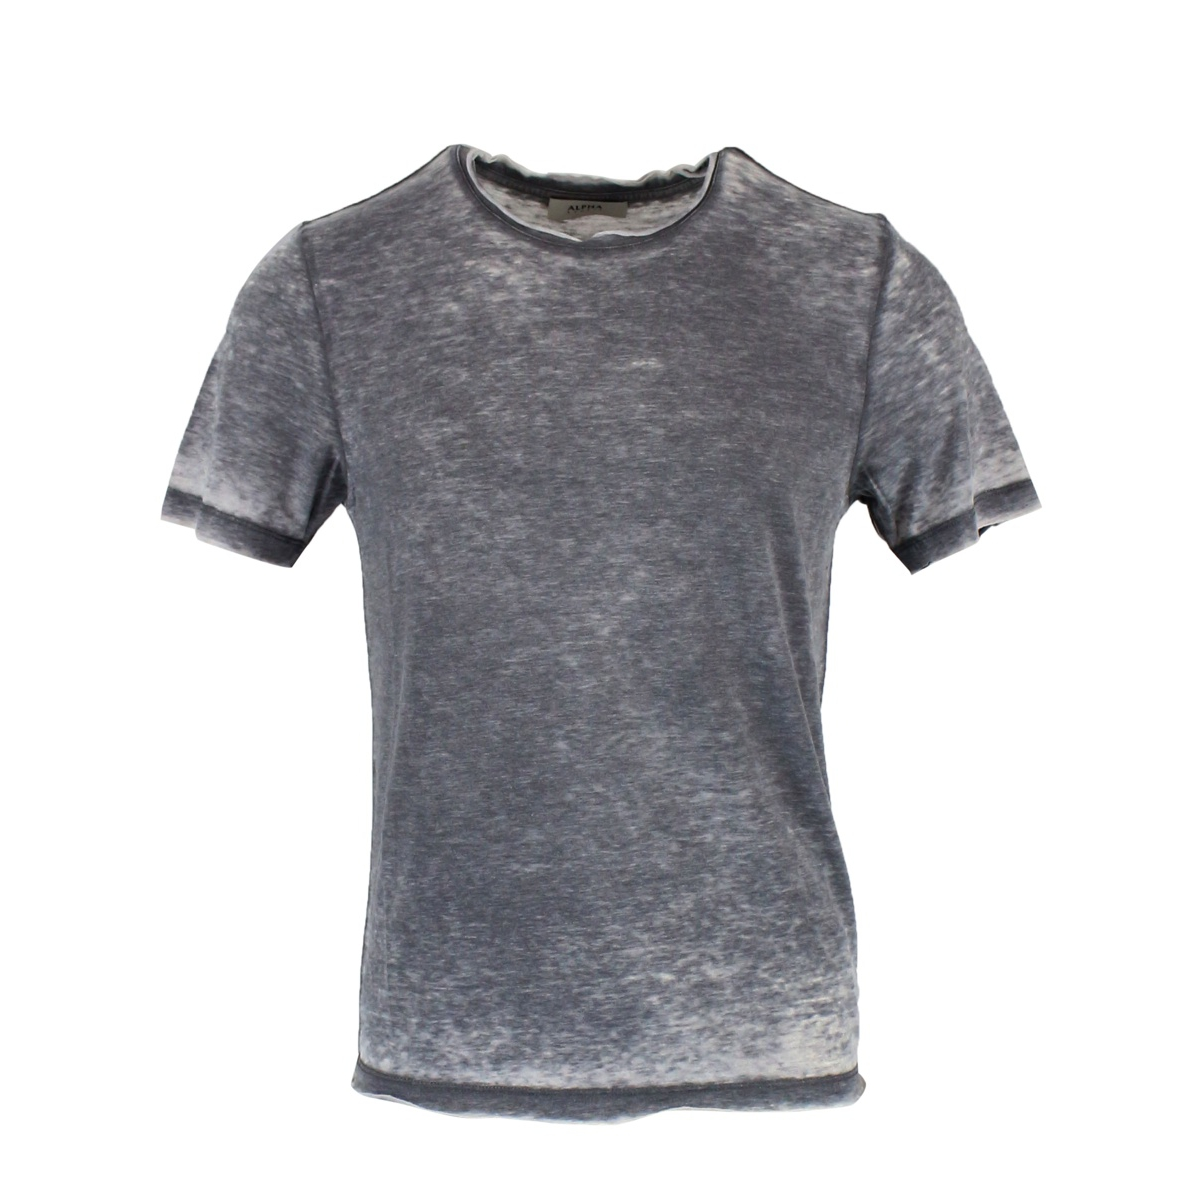 Cotton blend crew neck T-shirt Titanium ALPHA STUDIO